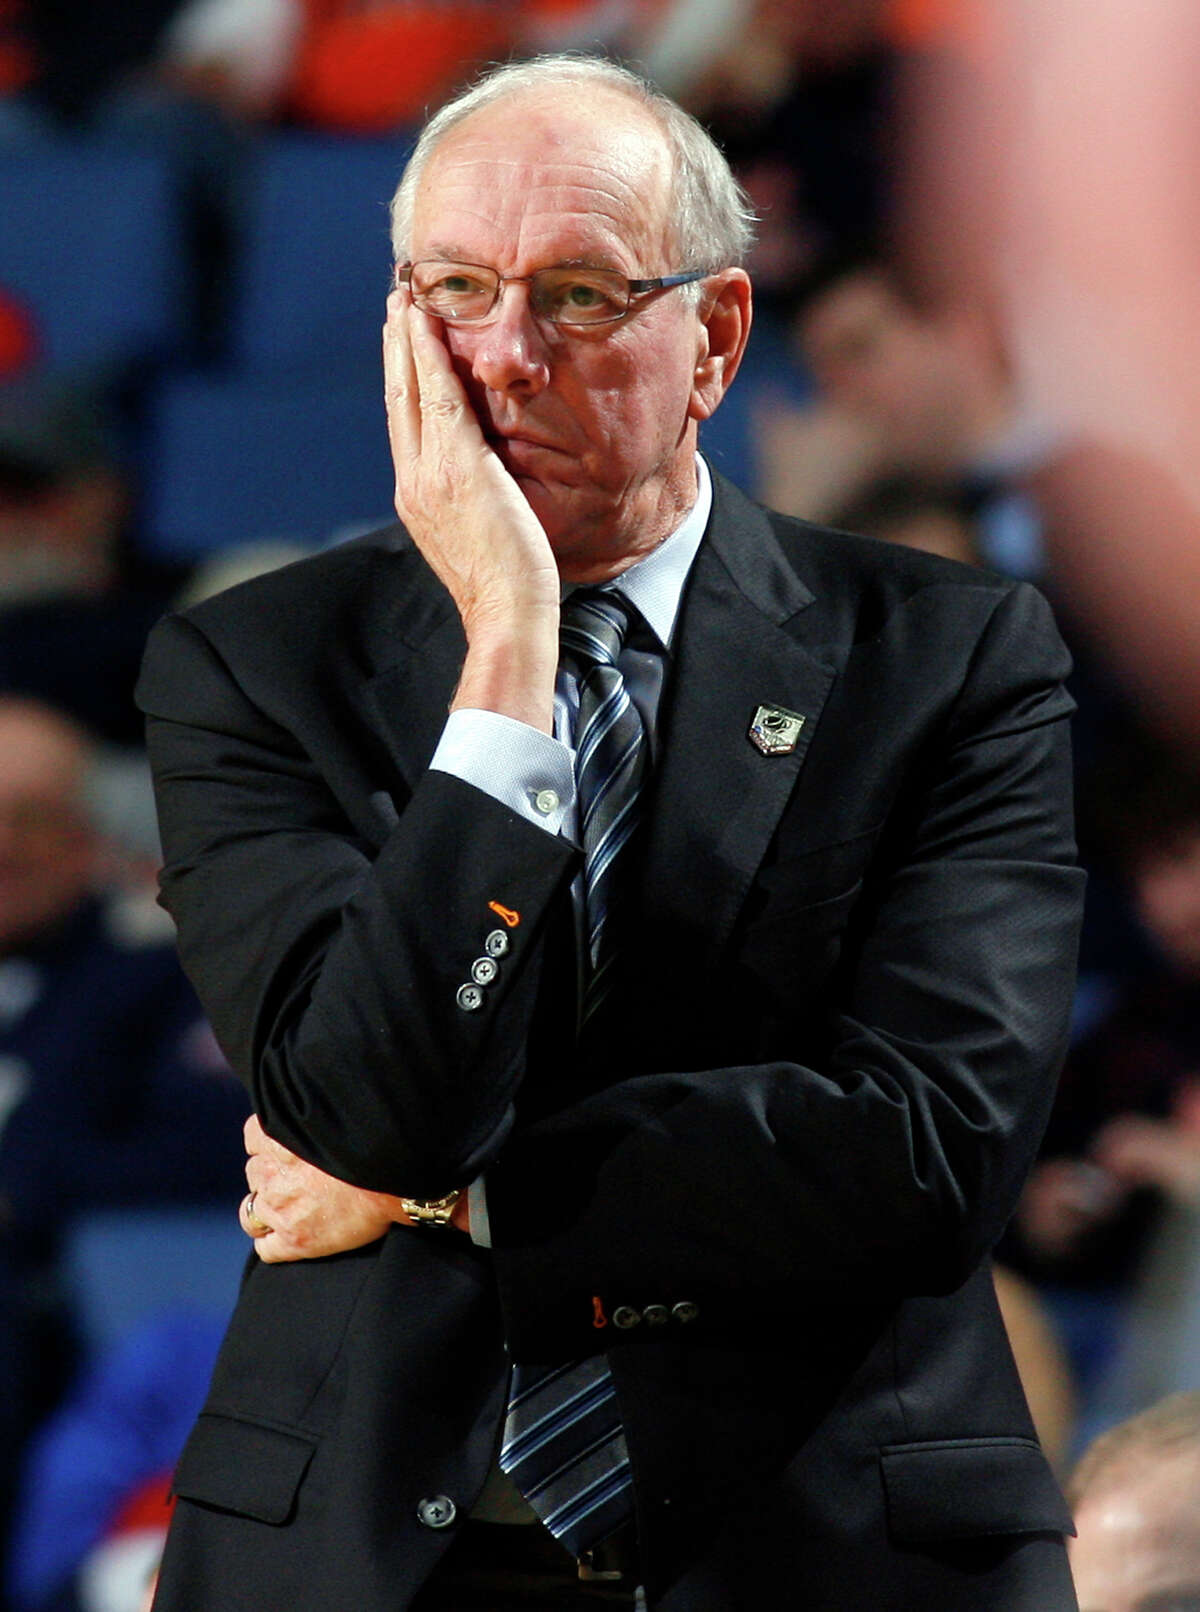 FILE - In this March 20, 2014, file photo, Syracuse head coach Jim Boeheim watches his team play during the second half of a second-round game in the NCAA college basketball tournament in Buffalo, N.Y. Syracuse University announced Wednesday, Feb. 4, 2015, that it has instituted a self-imposed postseason ban for the current men's basketball season as part of its case pending before the NCAA Committee on Infractions. (AP Photo/Bill Wippert, File) ORG XMIT: NY157